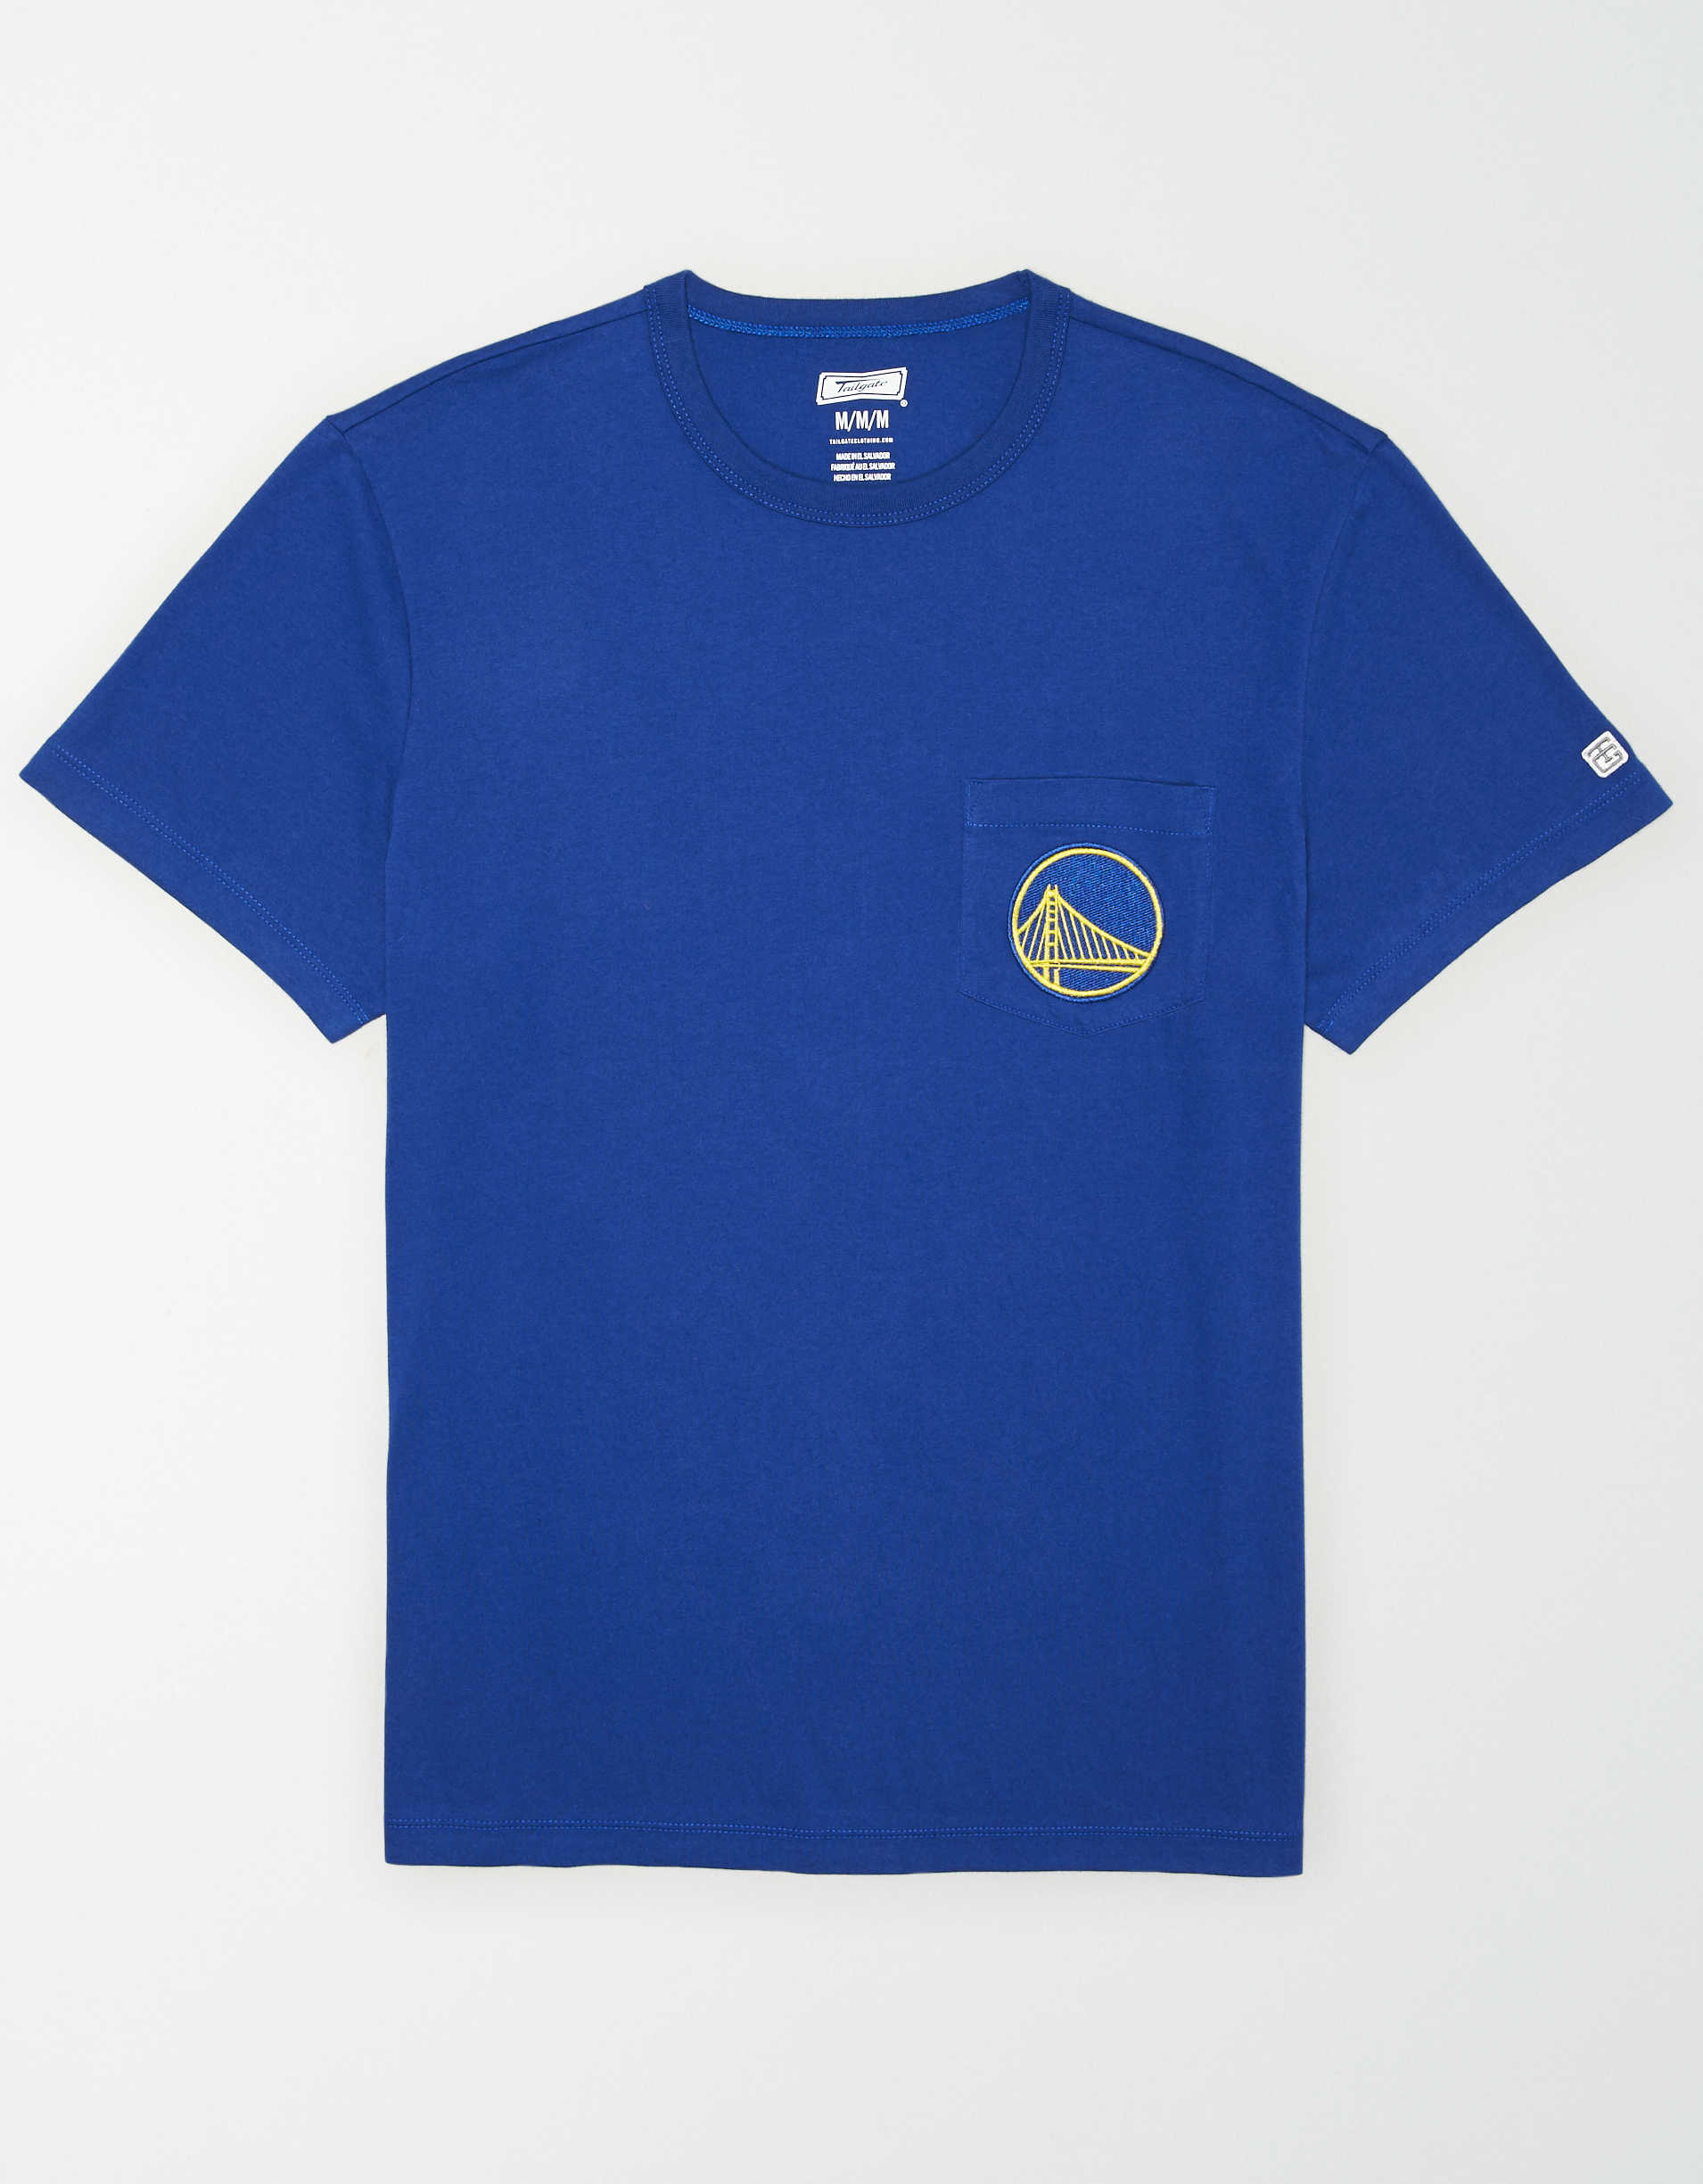 Tailgate Men's Golden State Warriors Embroidered Pocket T-Shirt